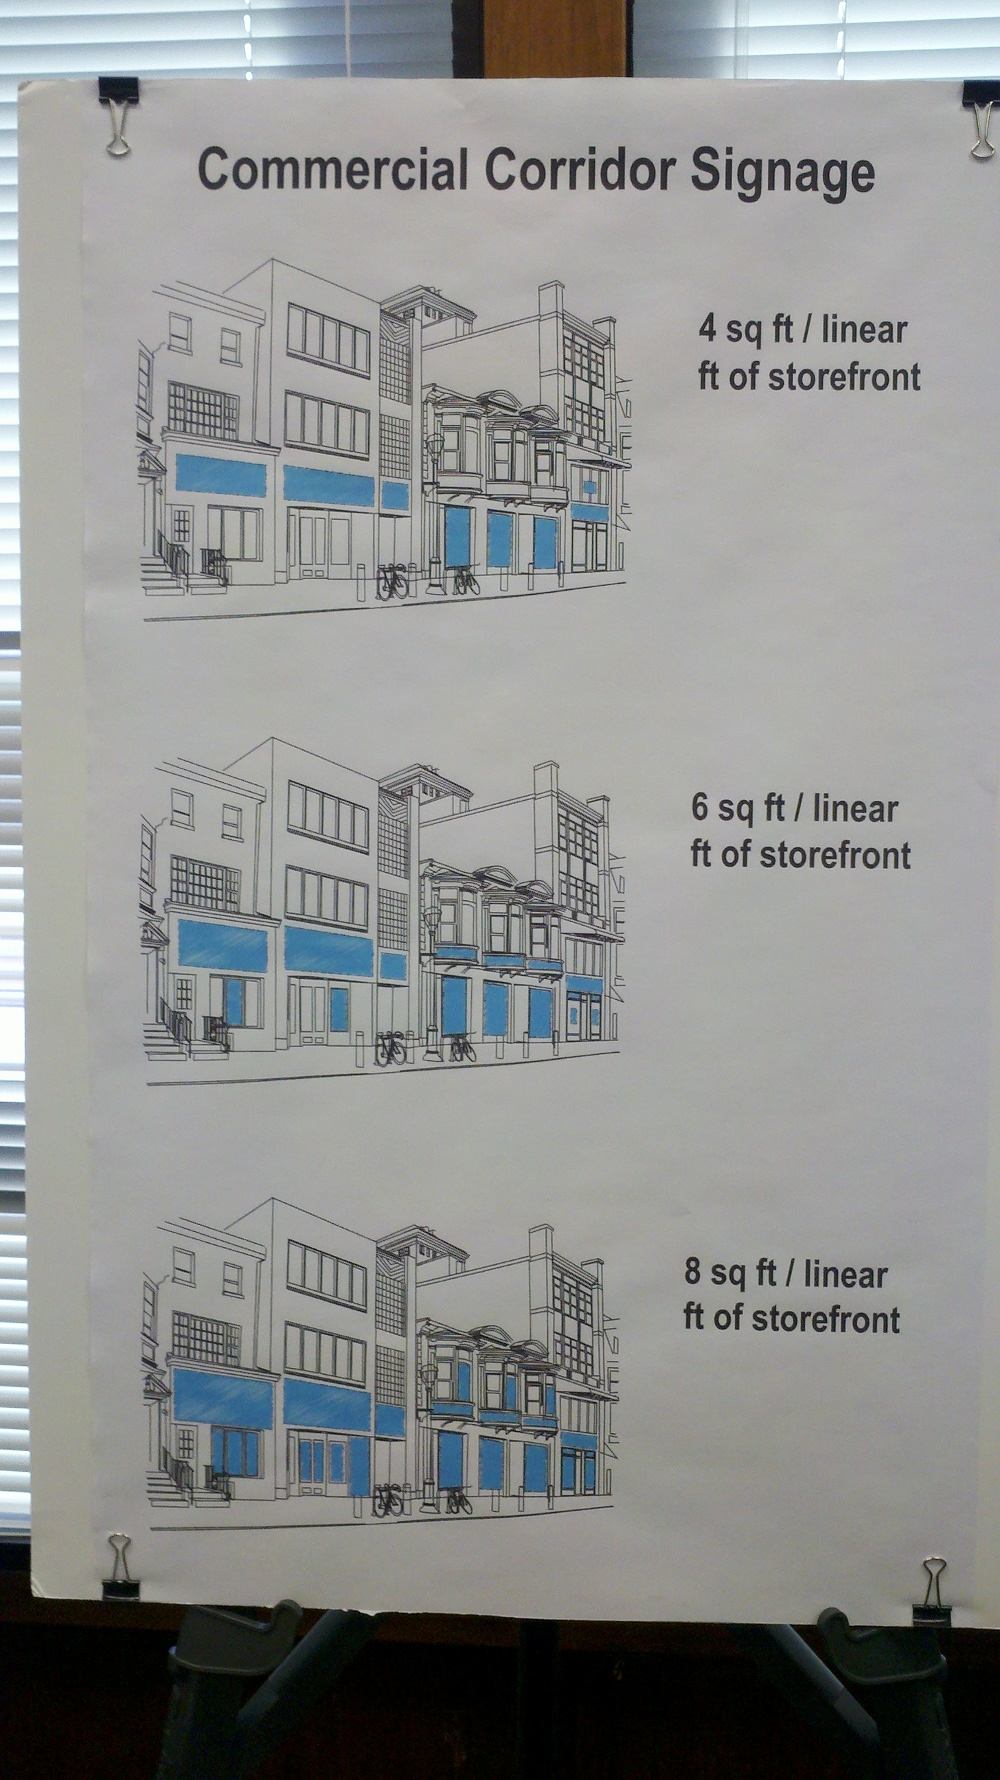 Comparing different possible C2 store-front sign limits